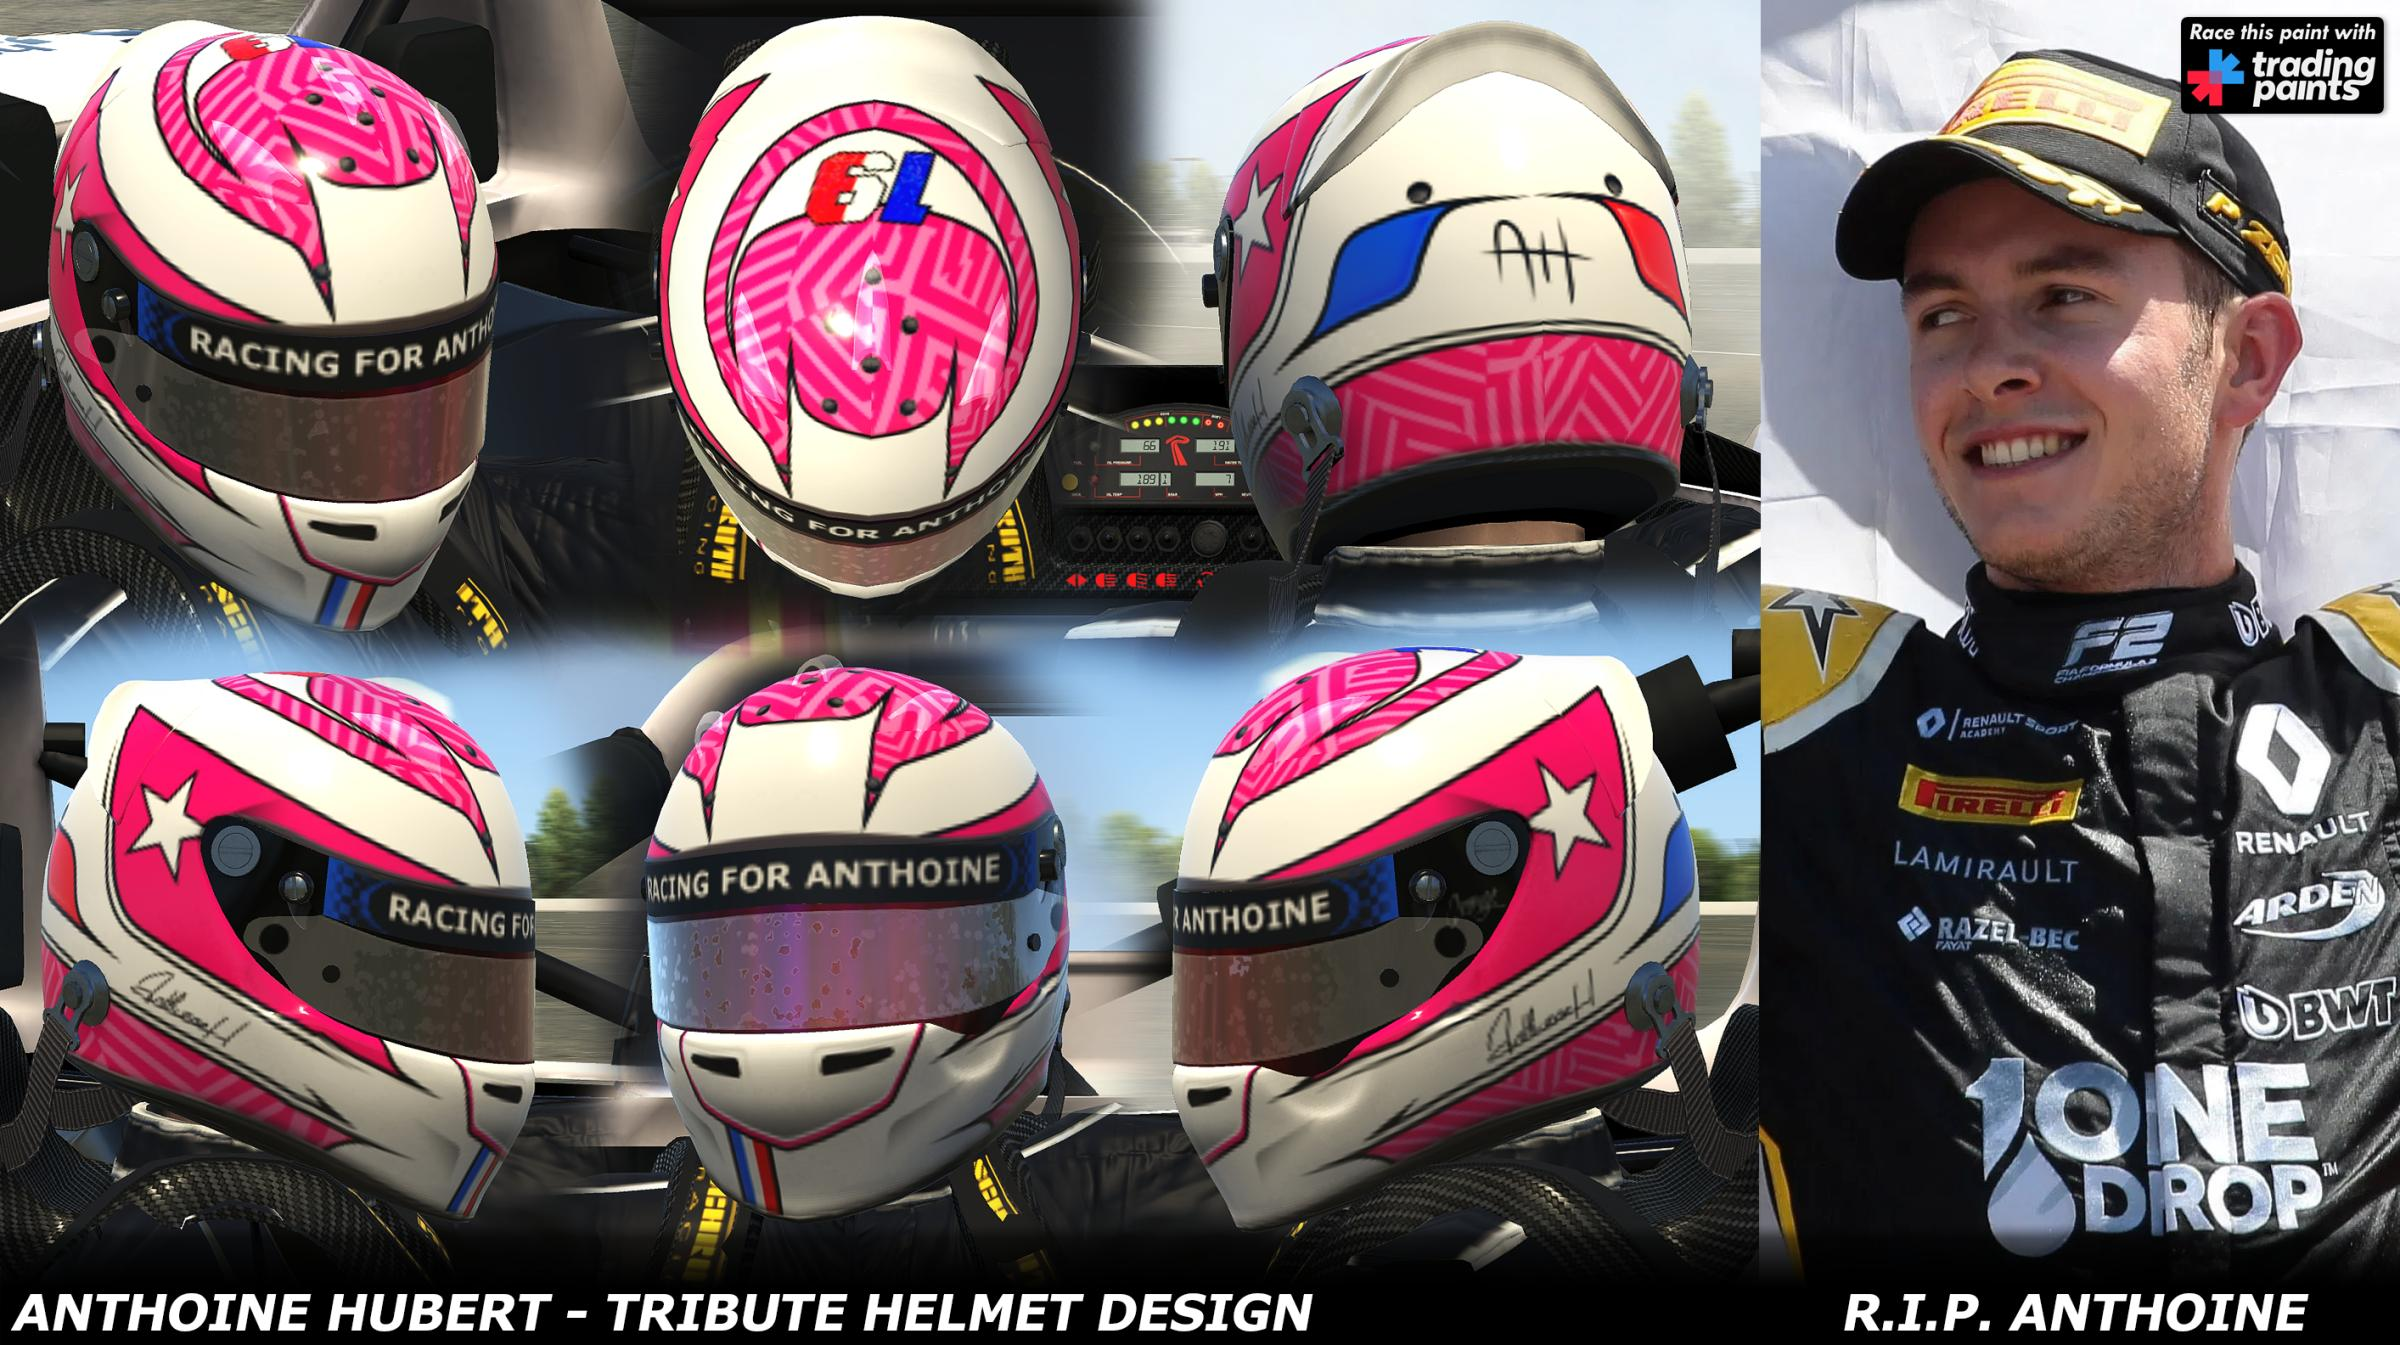 Preview of Anthoine Hubert - 2019 Tribute Helmet Design - R.I.P Anthoine by George Simmons